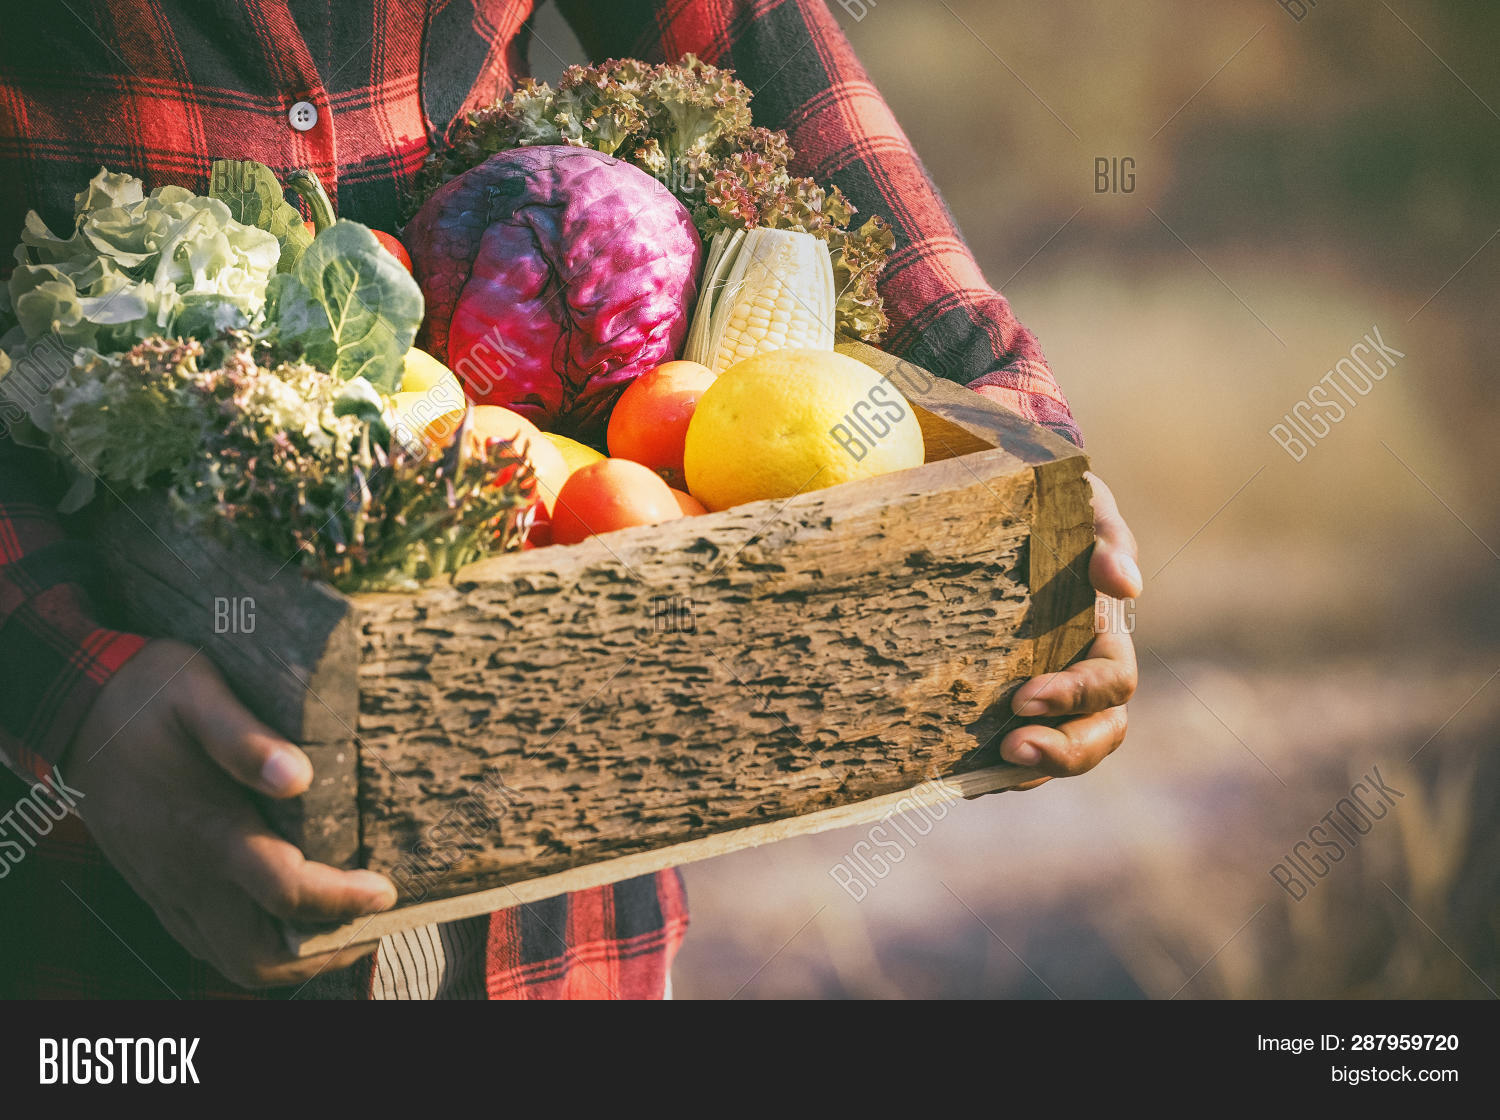 abundance,agriculture,background,basket,beetroot,box,cabbage,carrot,color,cooking,corn,crate,diet,eating,eggplant,farm,farmer,fennel,food,fresh,freshness,fruit,green,harvest,health,healthy,herbs,kitchen,leaf,lettuce,market,menu,natural,nature,nutrition,organic,pepper,ripe,rural,rustic,salad,space,spices,summer,tomato,vegetable,vegetarian,wood,wooden